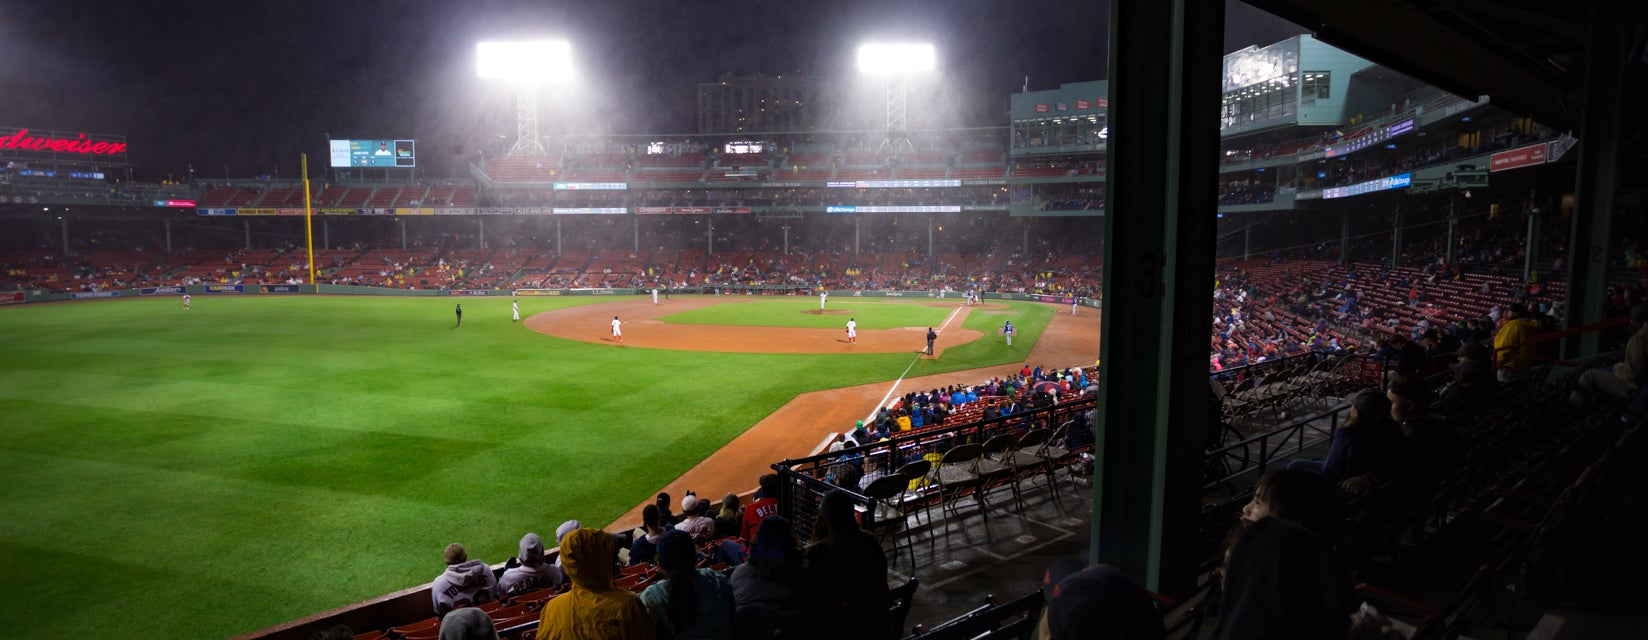 Seat view from Outfield Grandstand